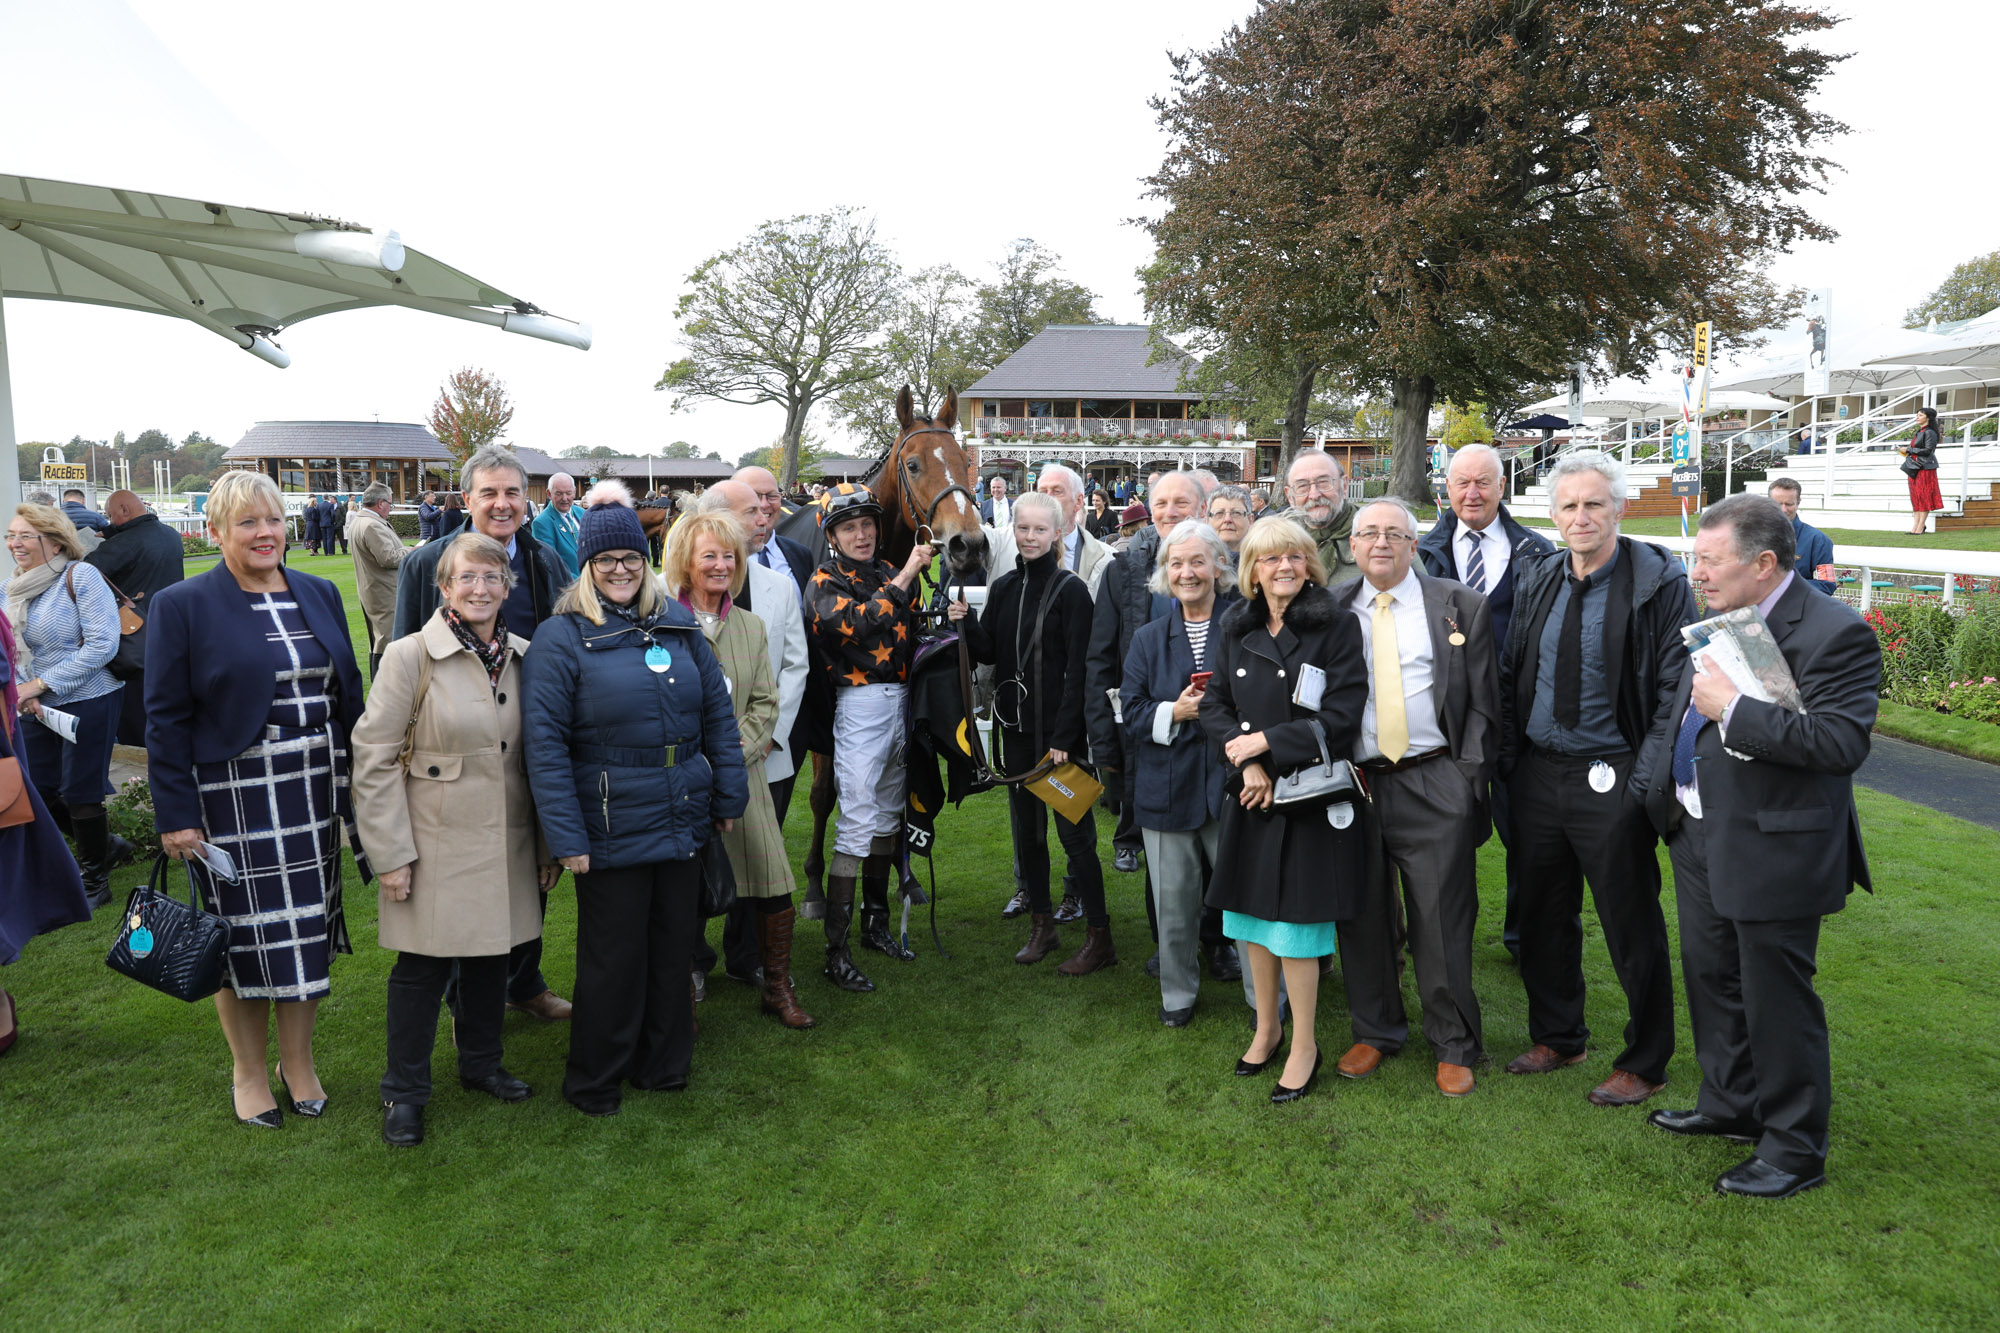 Members with Crownthorpe at York